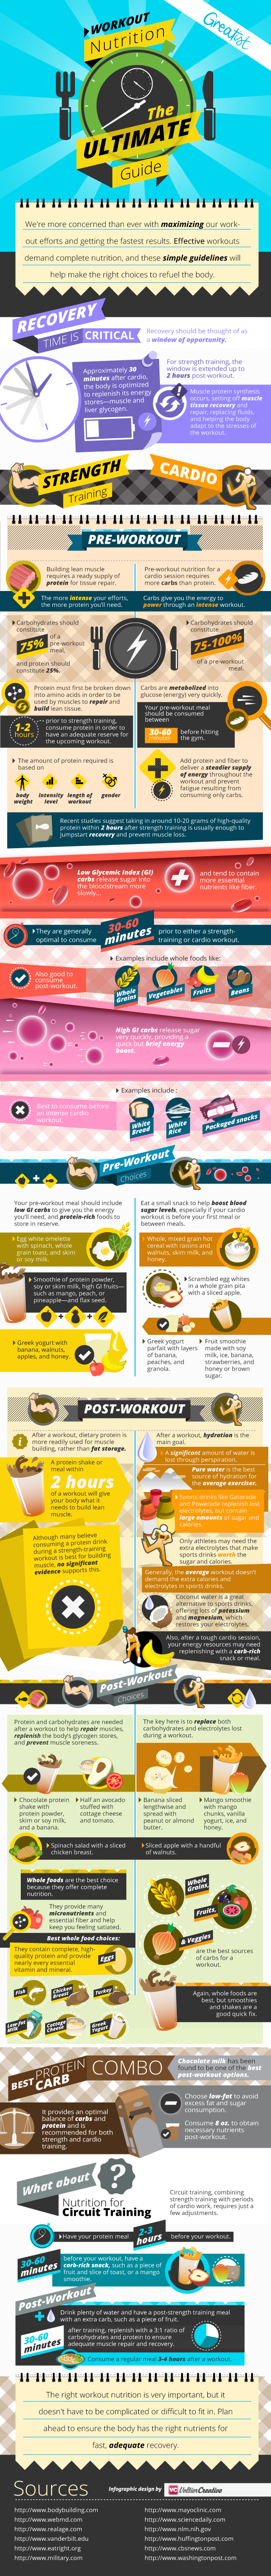 workout foods